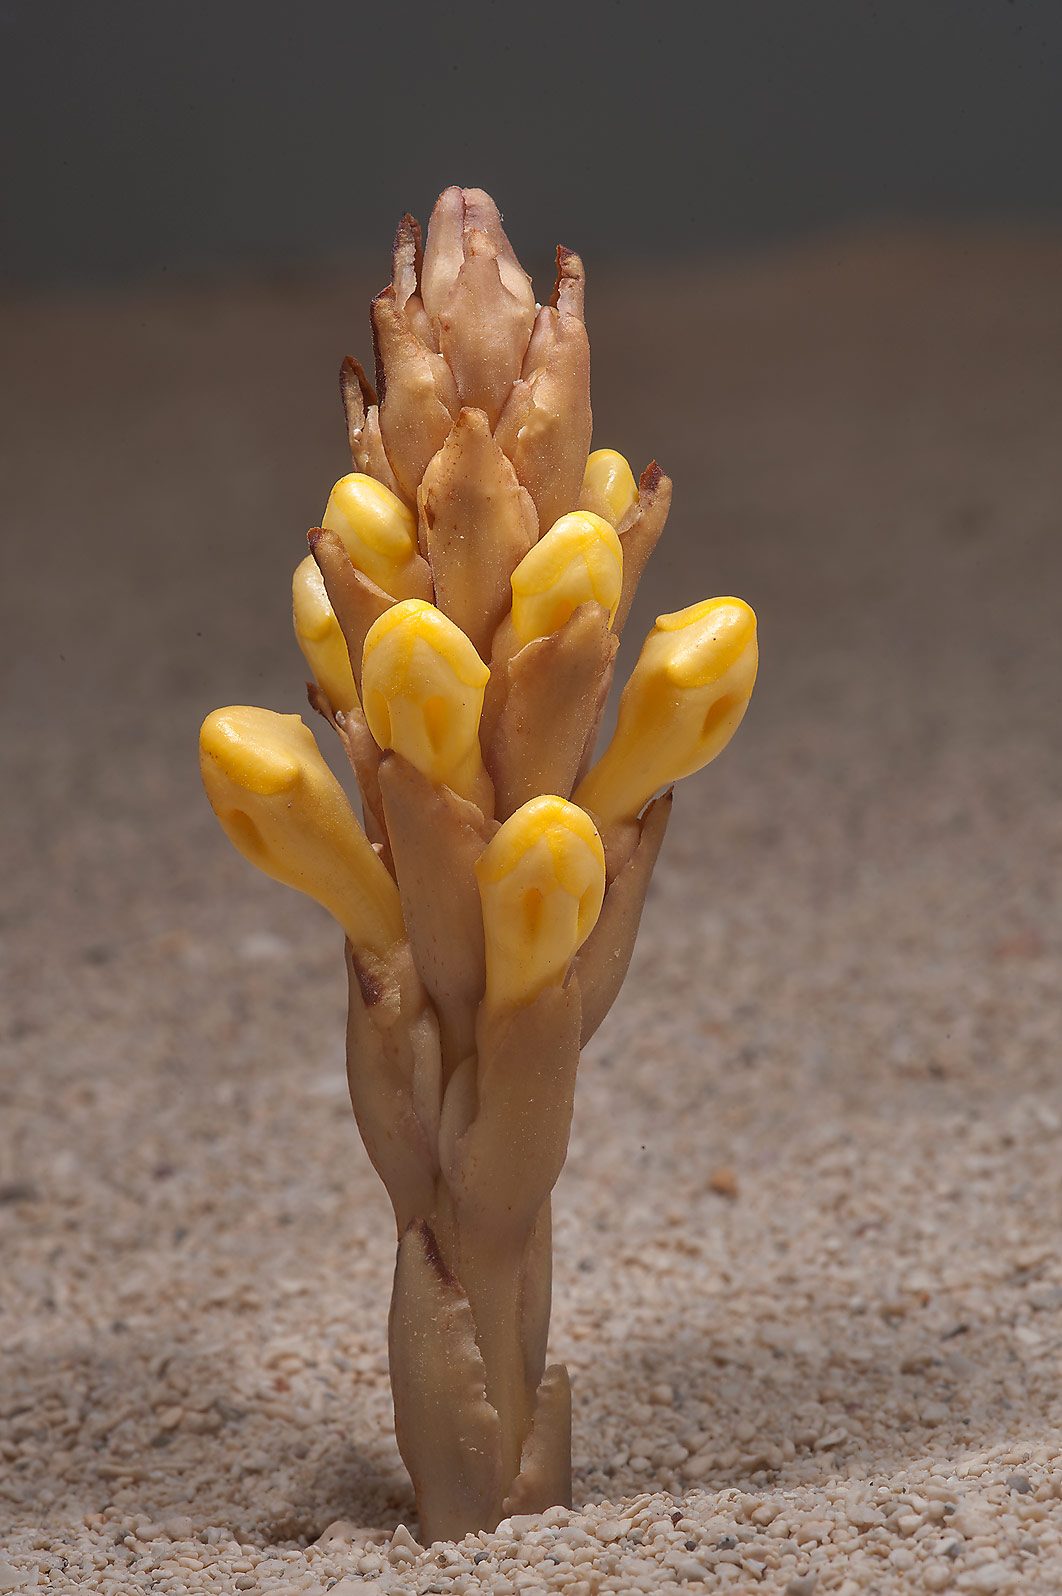 Flower of Cistanche tubulosa on a beach of Umm...in Madinat Al Shamal area. Qatar